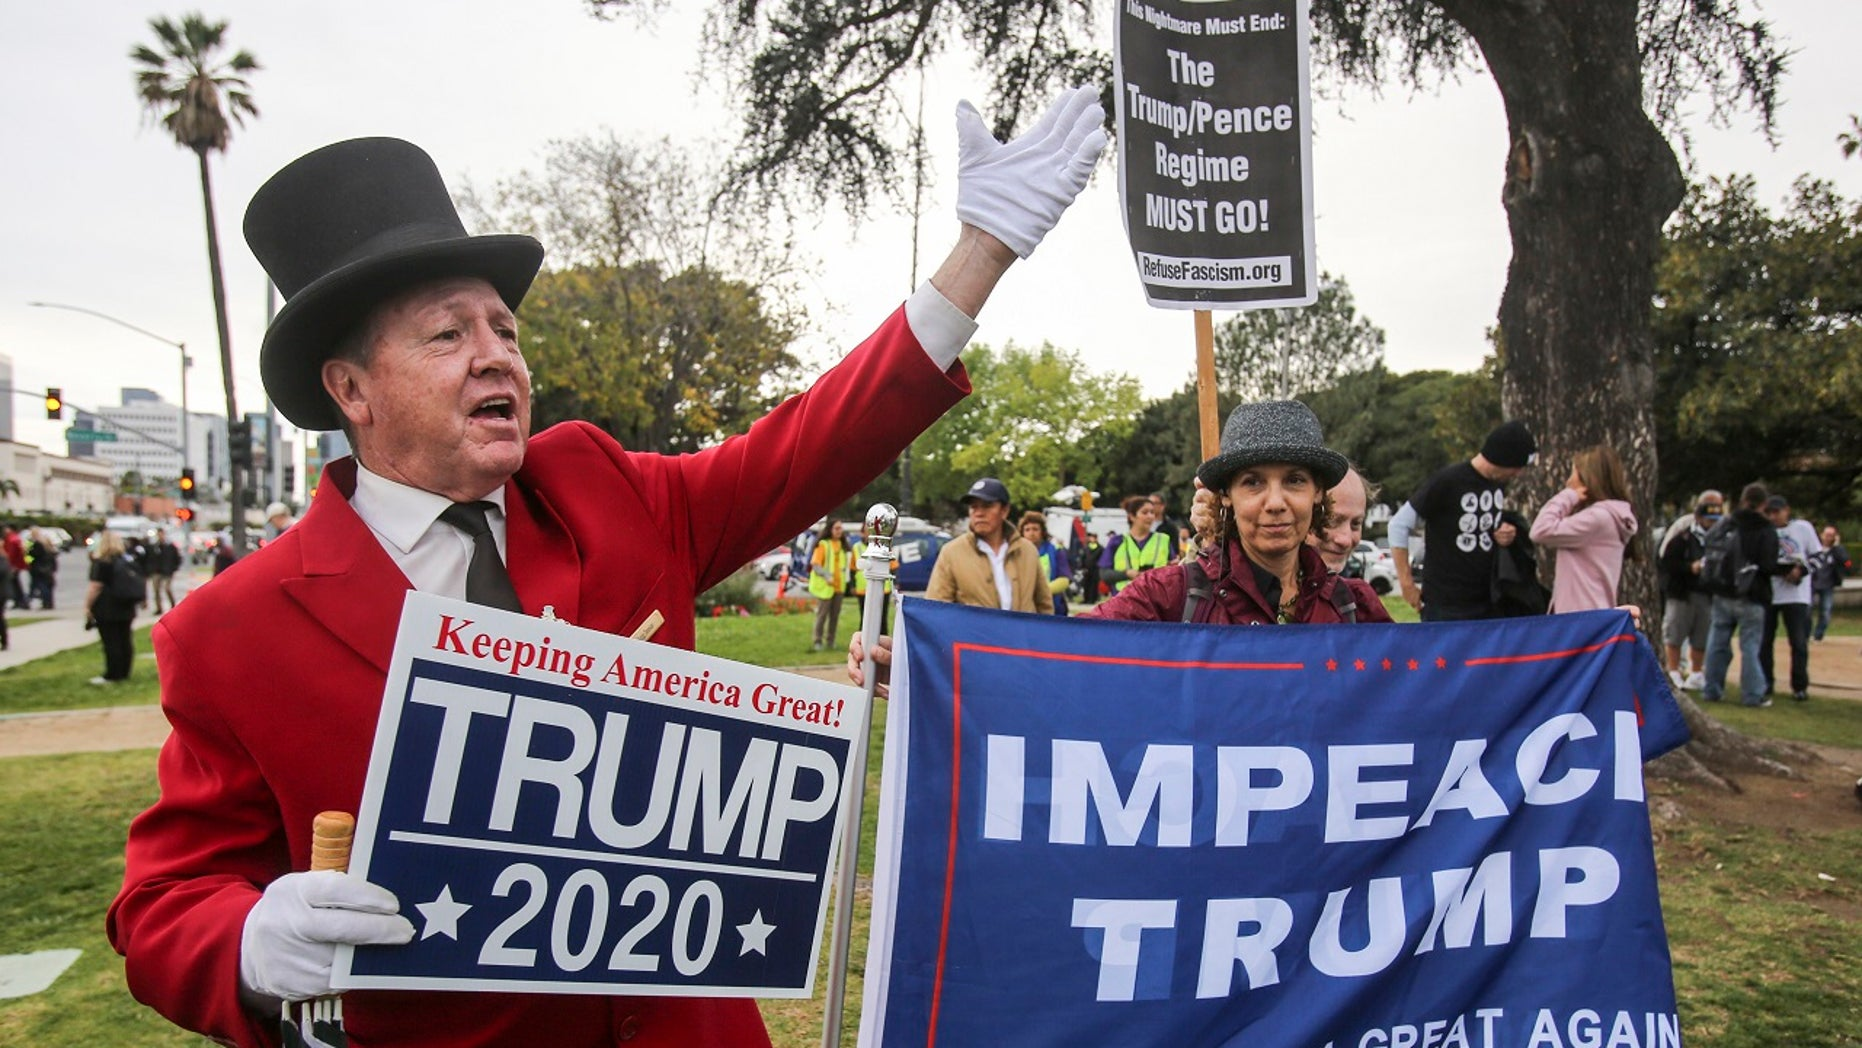 Gregg Donovan, left, supporter of President Donald Trump holds a sign during a rally against a visit by President Donald Trump, March 13, 2018.